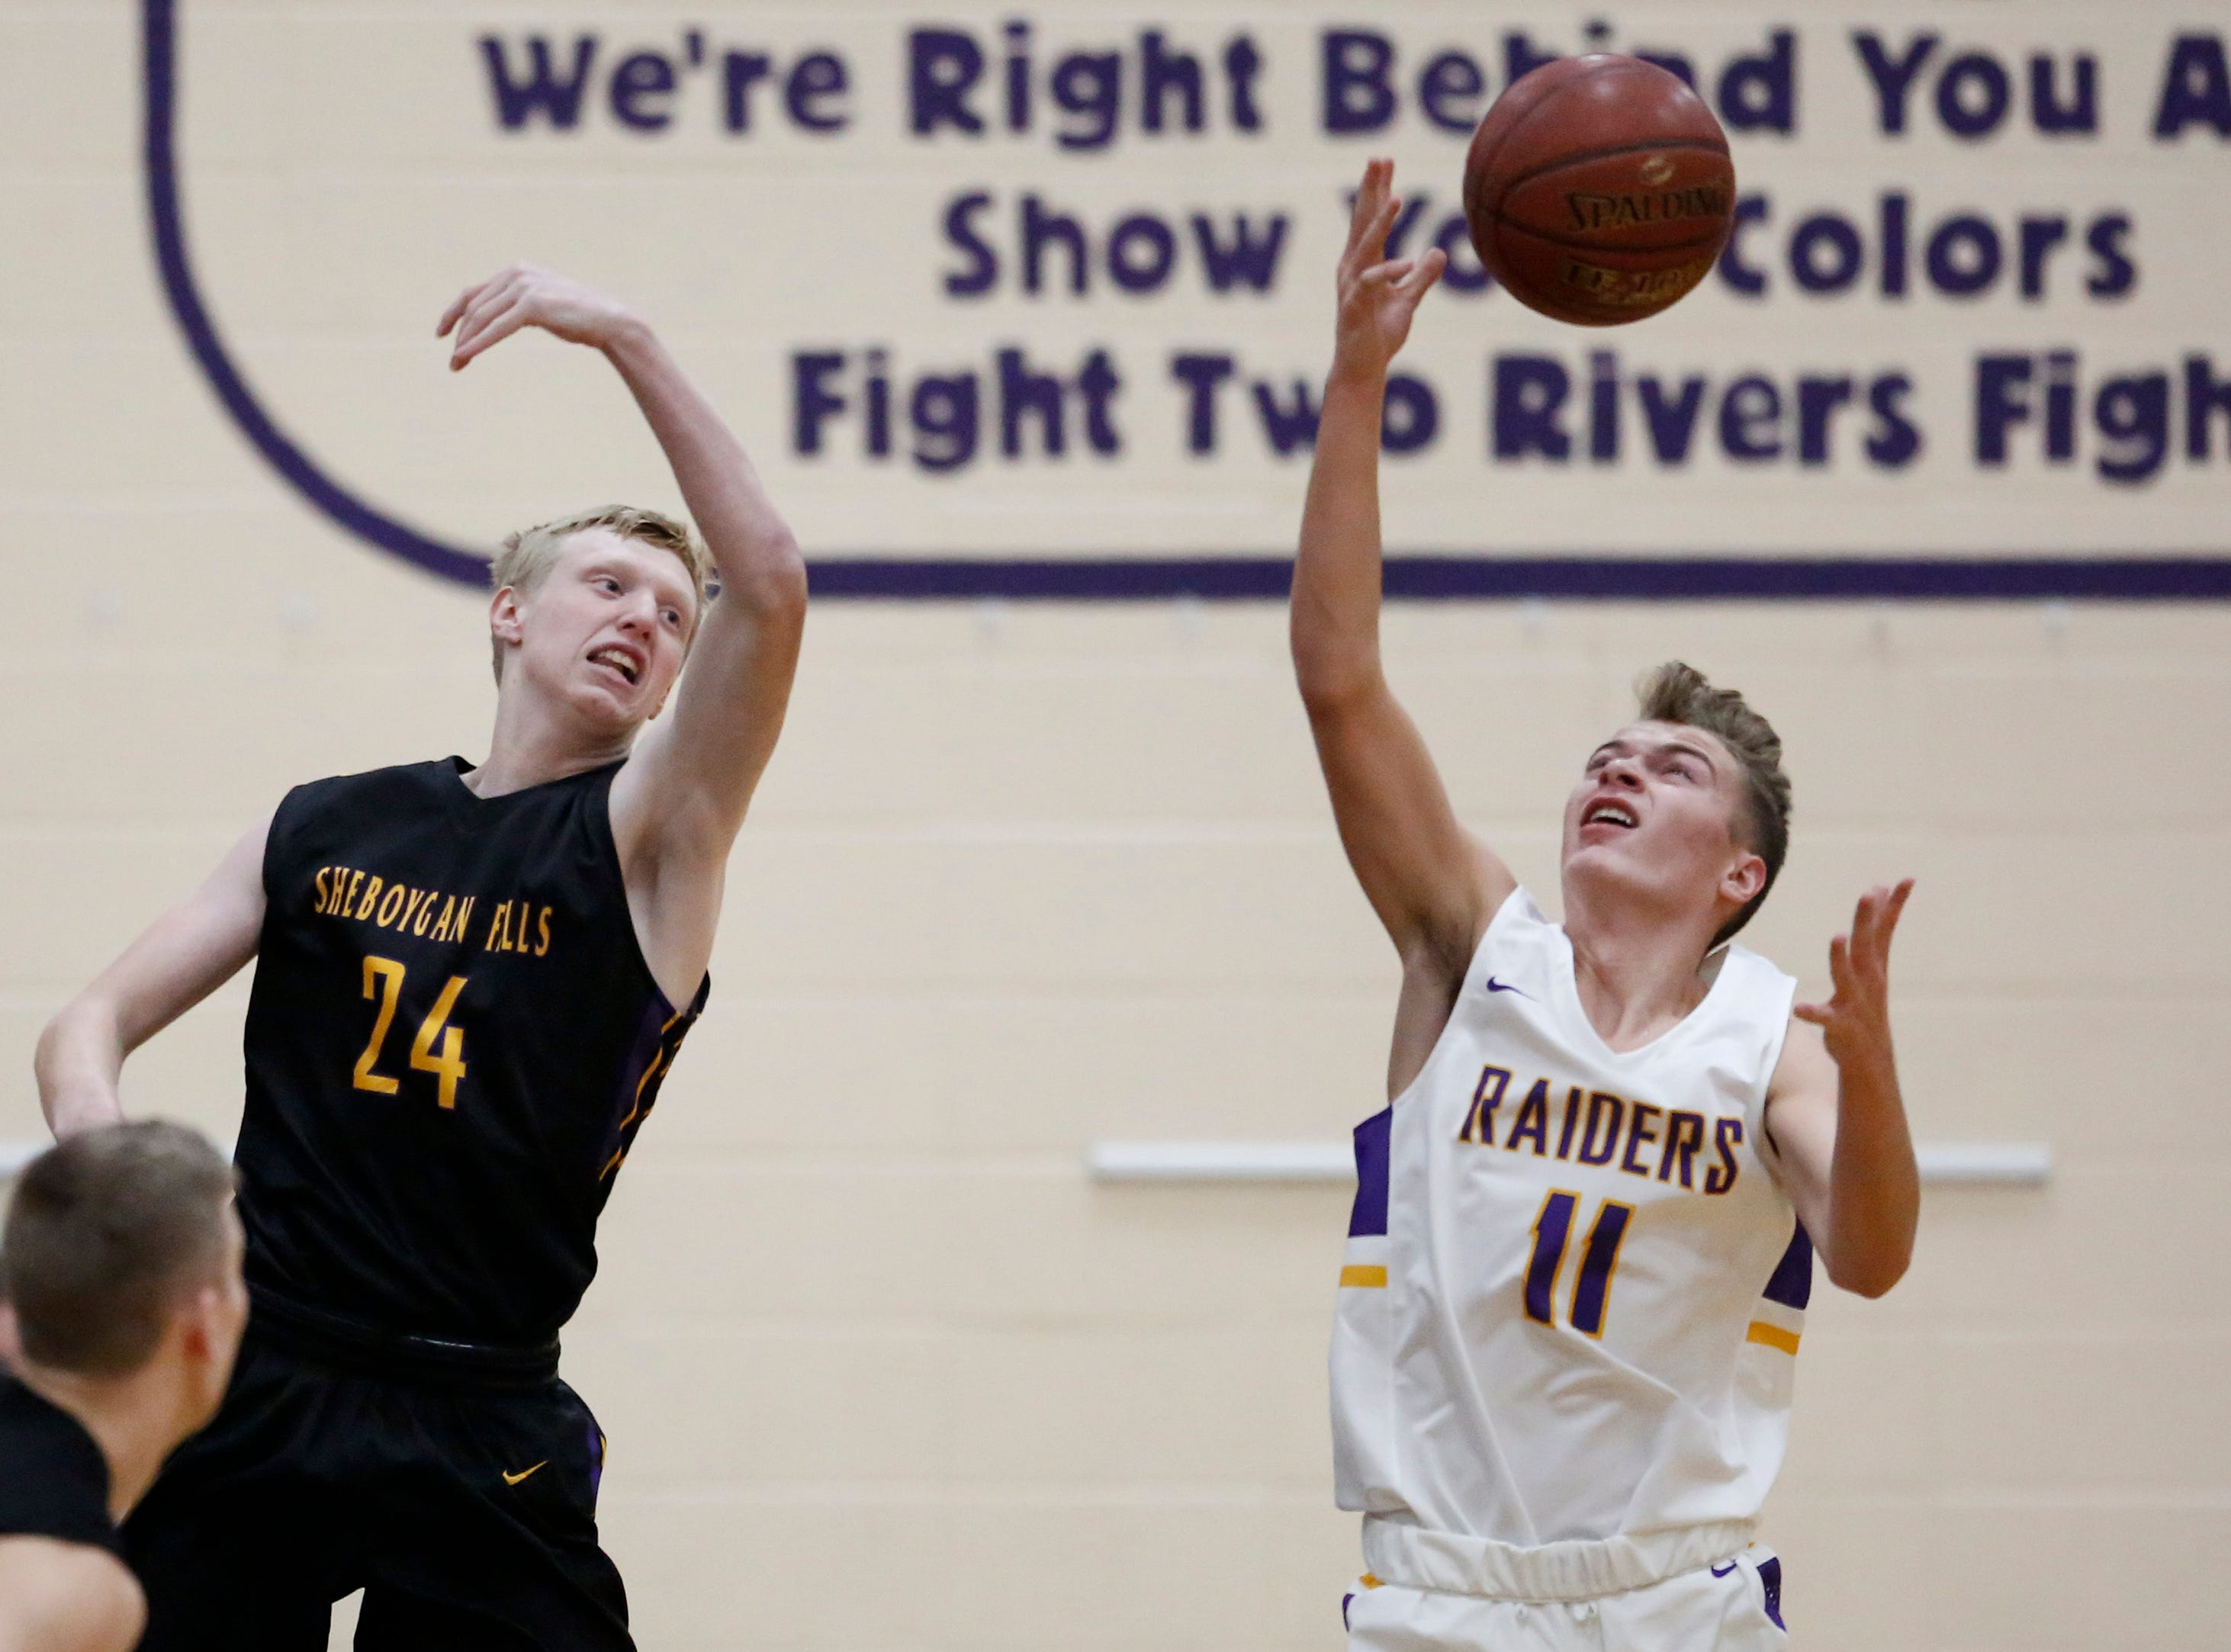 Two Rivers' Alexander Klein wins a rebound over Sheboygan Falls' Isaac Klemme during an Eastern Wisconsin Conference game at Two Rivers High School Tuesday, December 4, 2018, in Two Rivers, Wis. Joshua Clark/USA TODAY NETWORK-Wisconsin